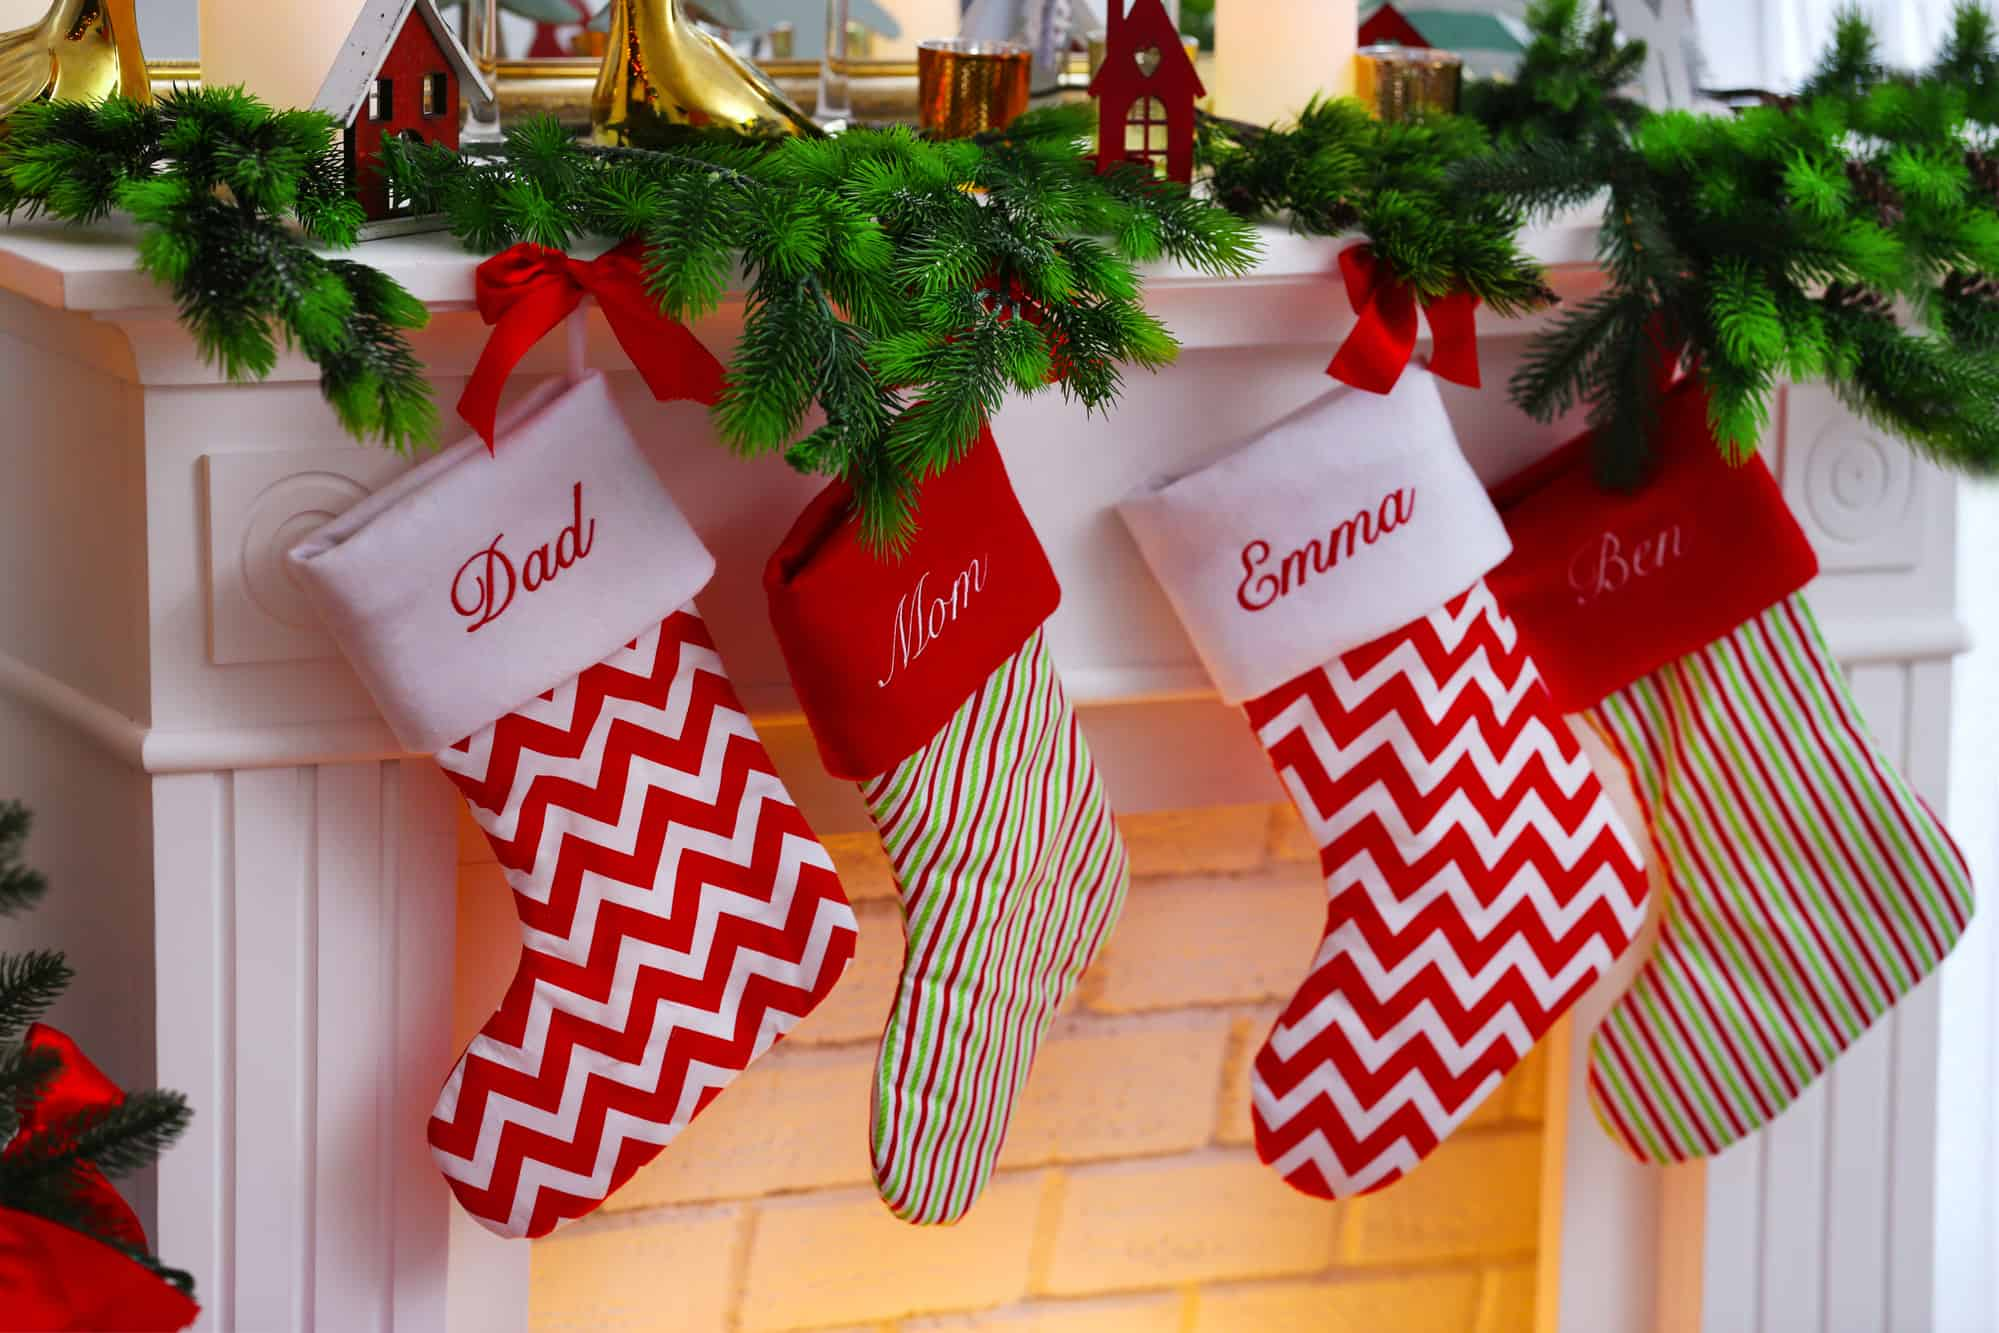 Stockings hanging over the fireplace waiting to get filled with one of the best toddler stocking fillers ideas on this list!